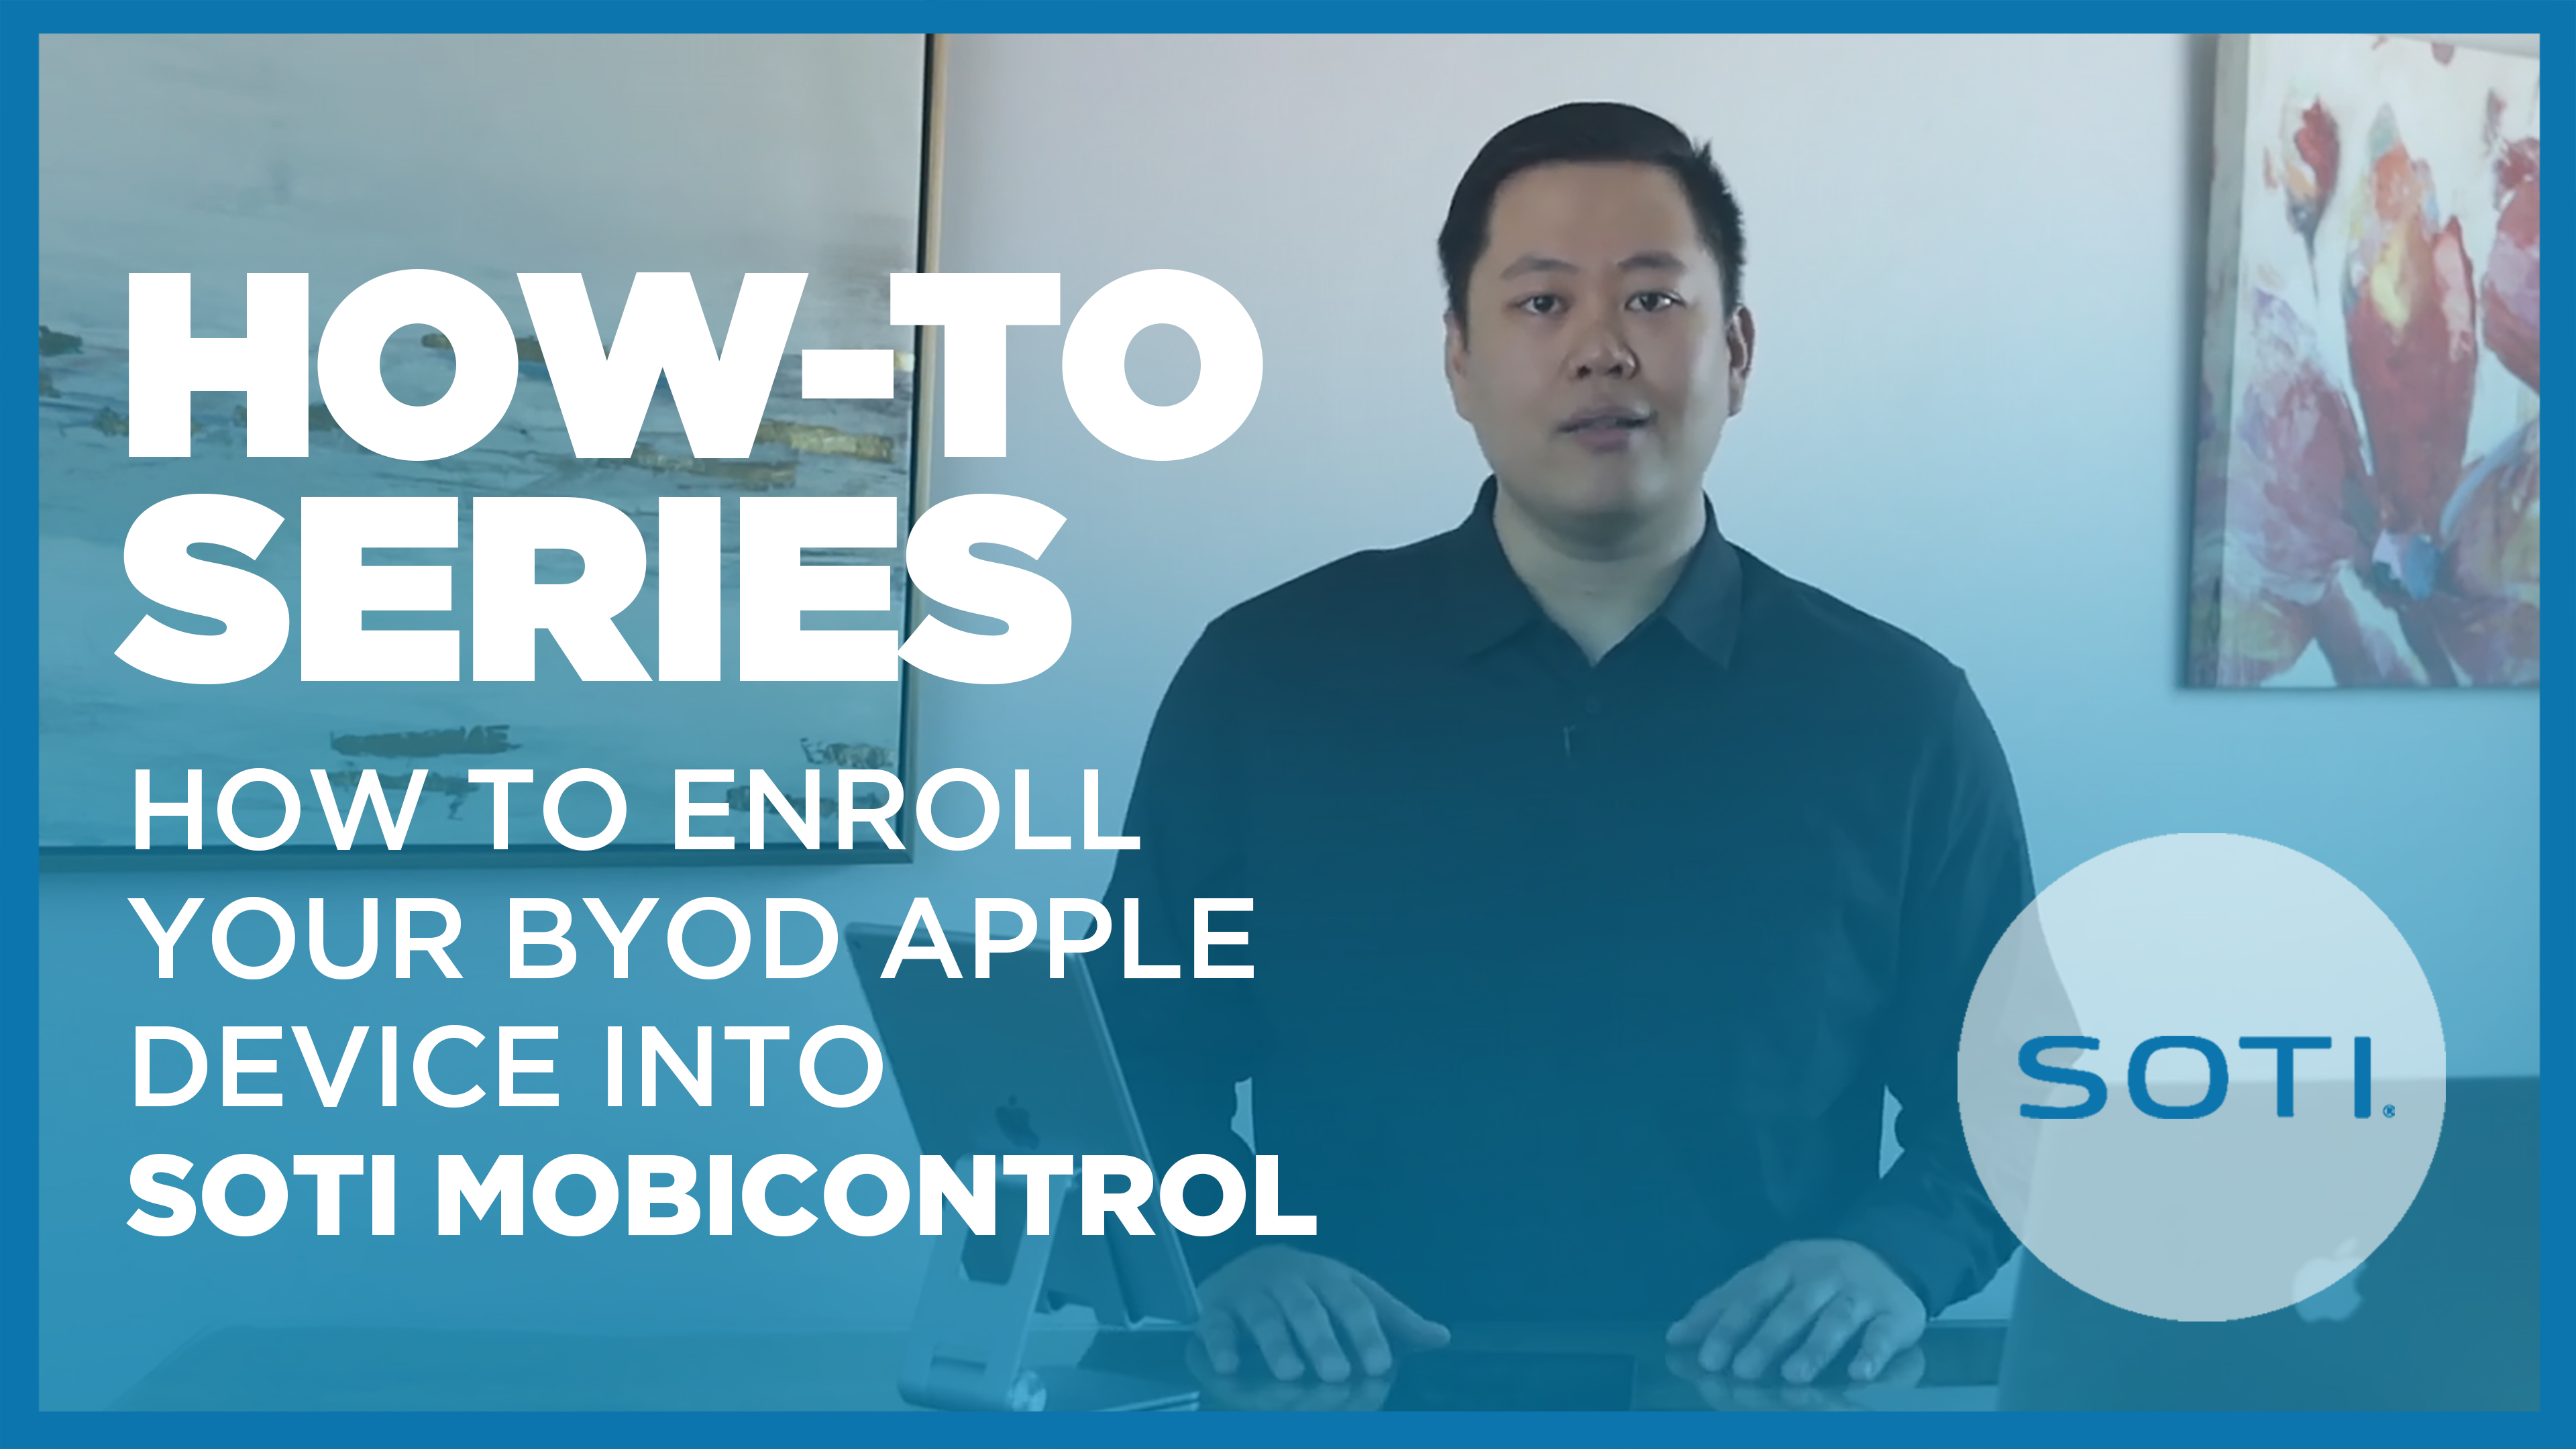 Video on How To Enroll Your BYOD Apple Device into SOTI MobiControl